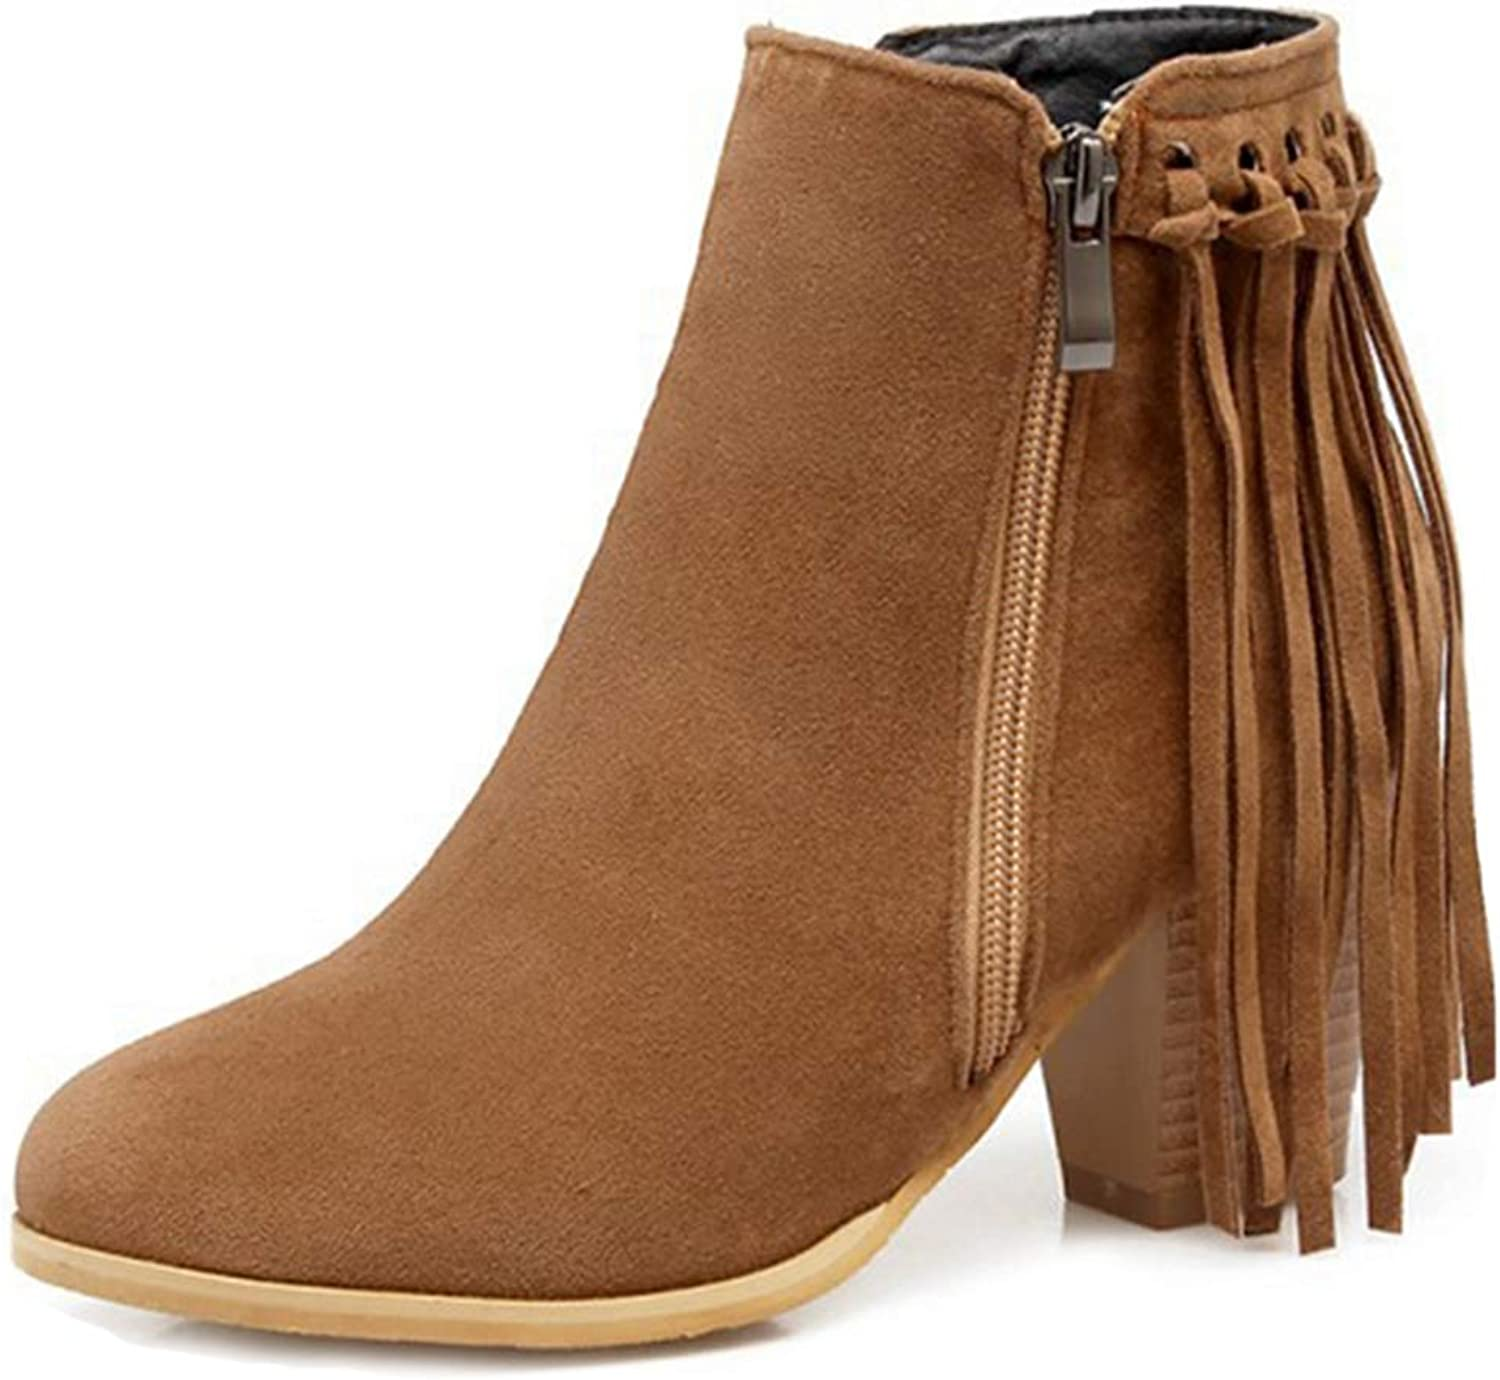 GIY Women's Fringe Chunky Platform Ankle Boots Suede Winter Velvet Bootie Stacked Heel Tassel Boot shoes